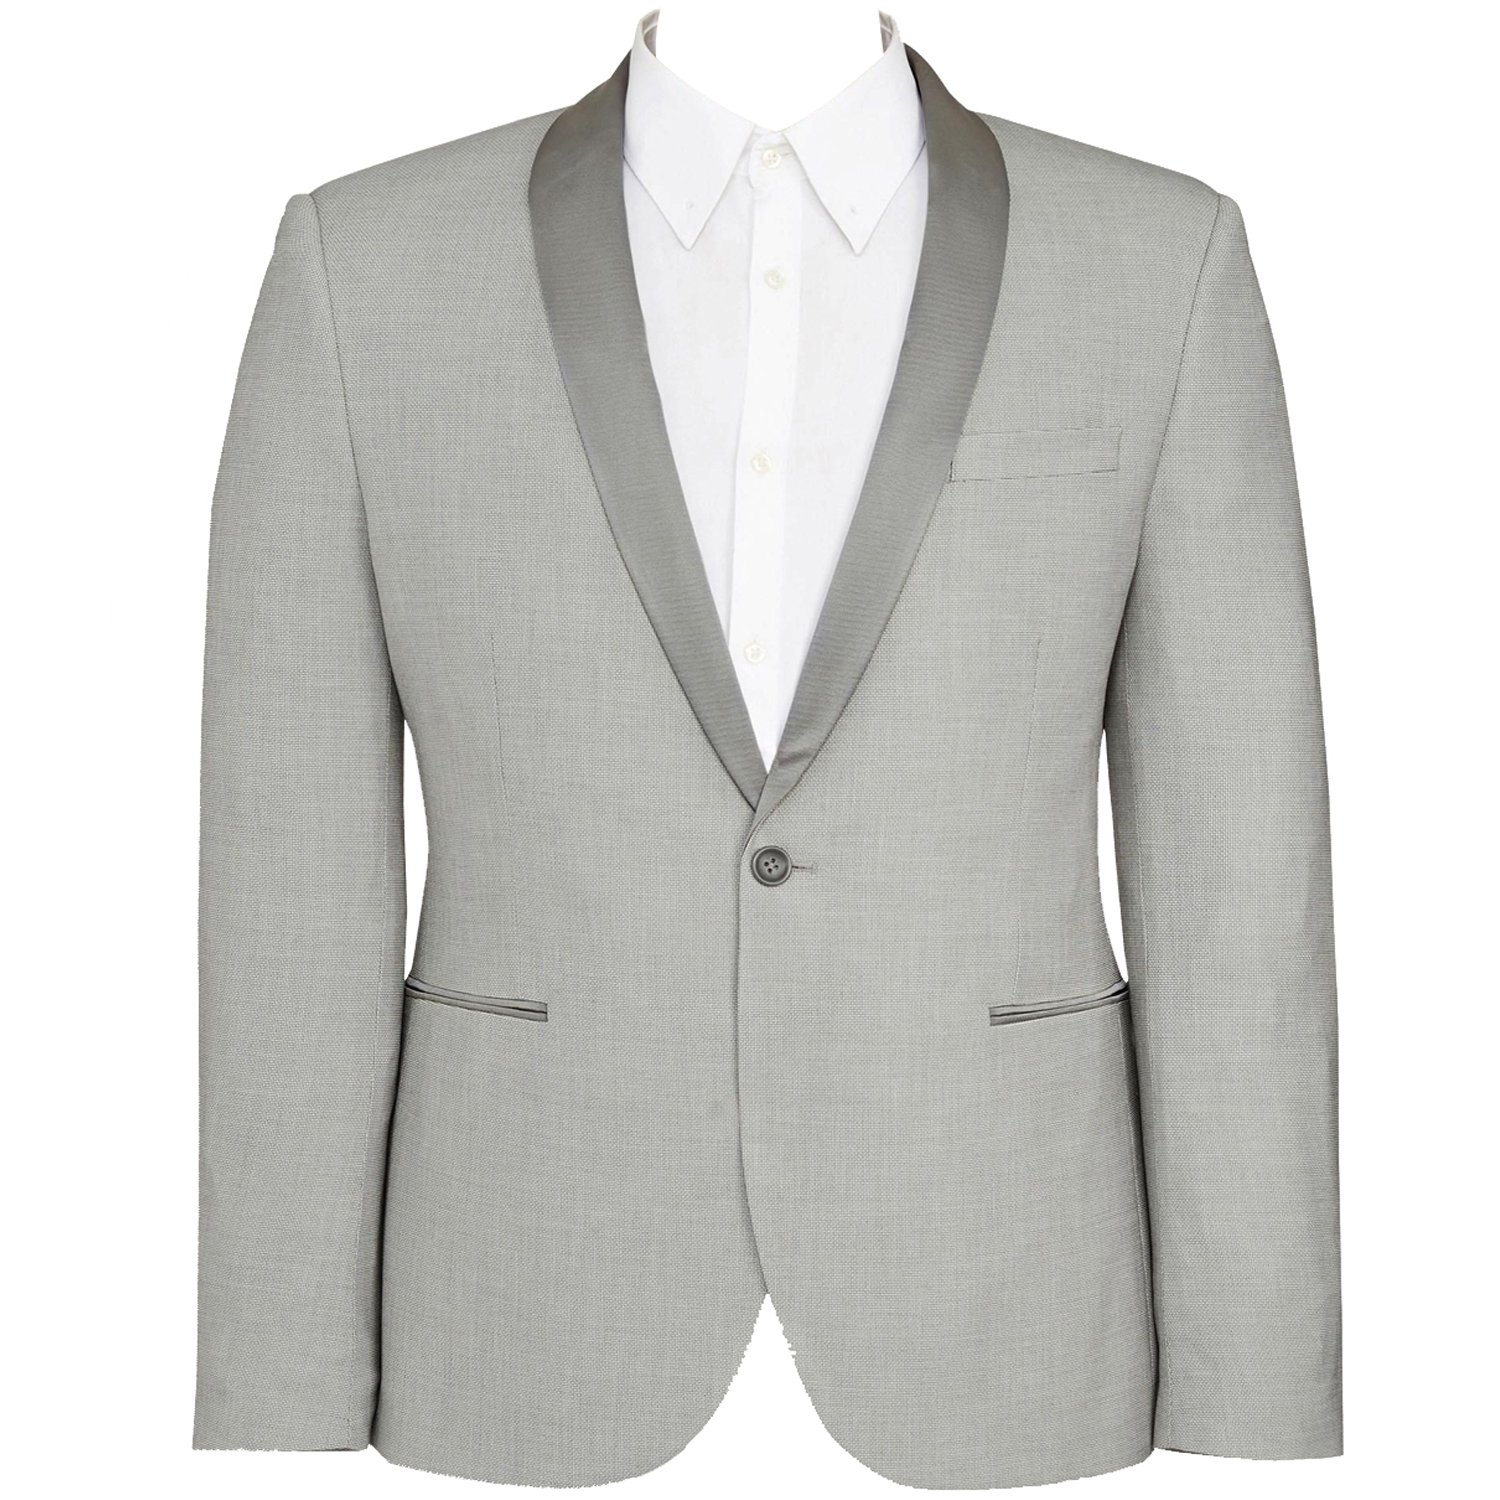 HBDesign Mens 1 Piece 1 Button Shawl Lapel Slim Fit Suit Formal Light Grey HM552LGJ